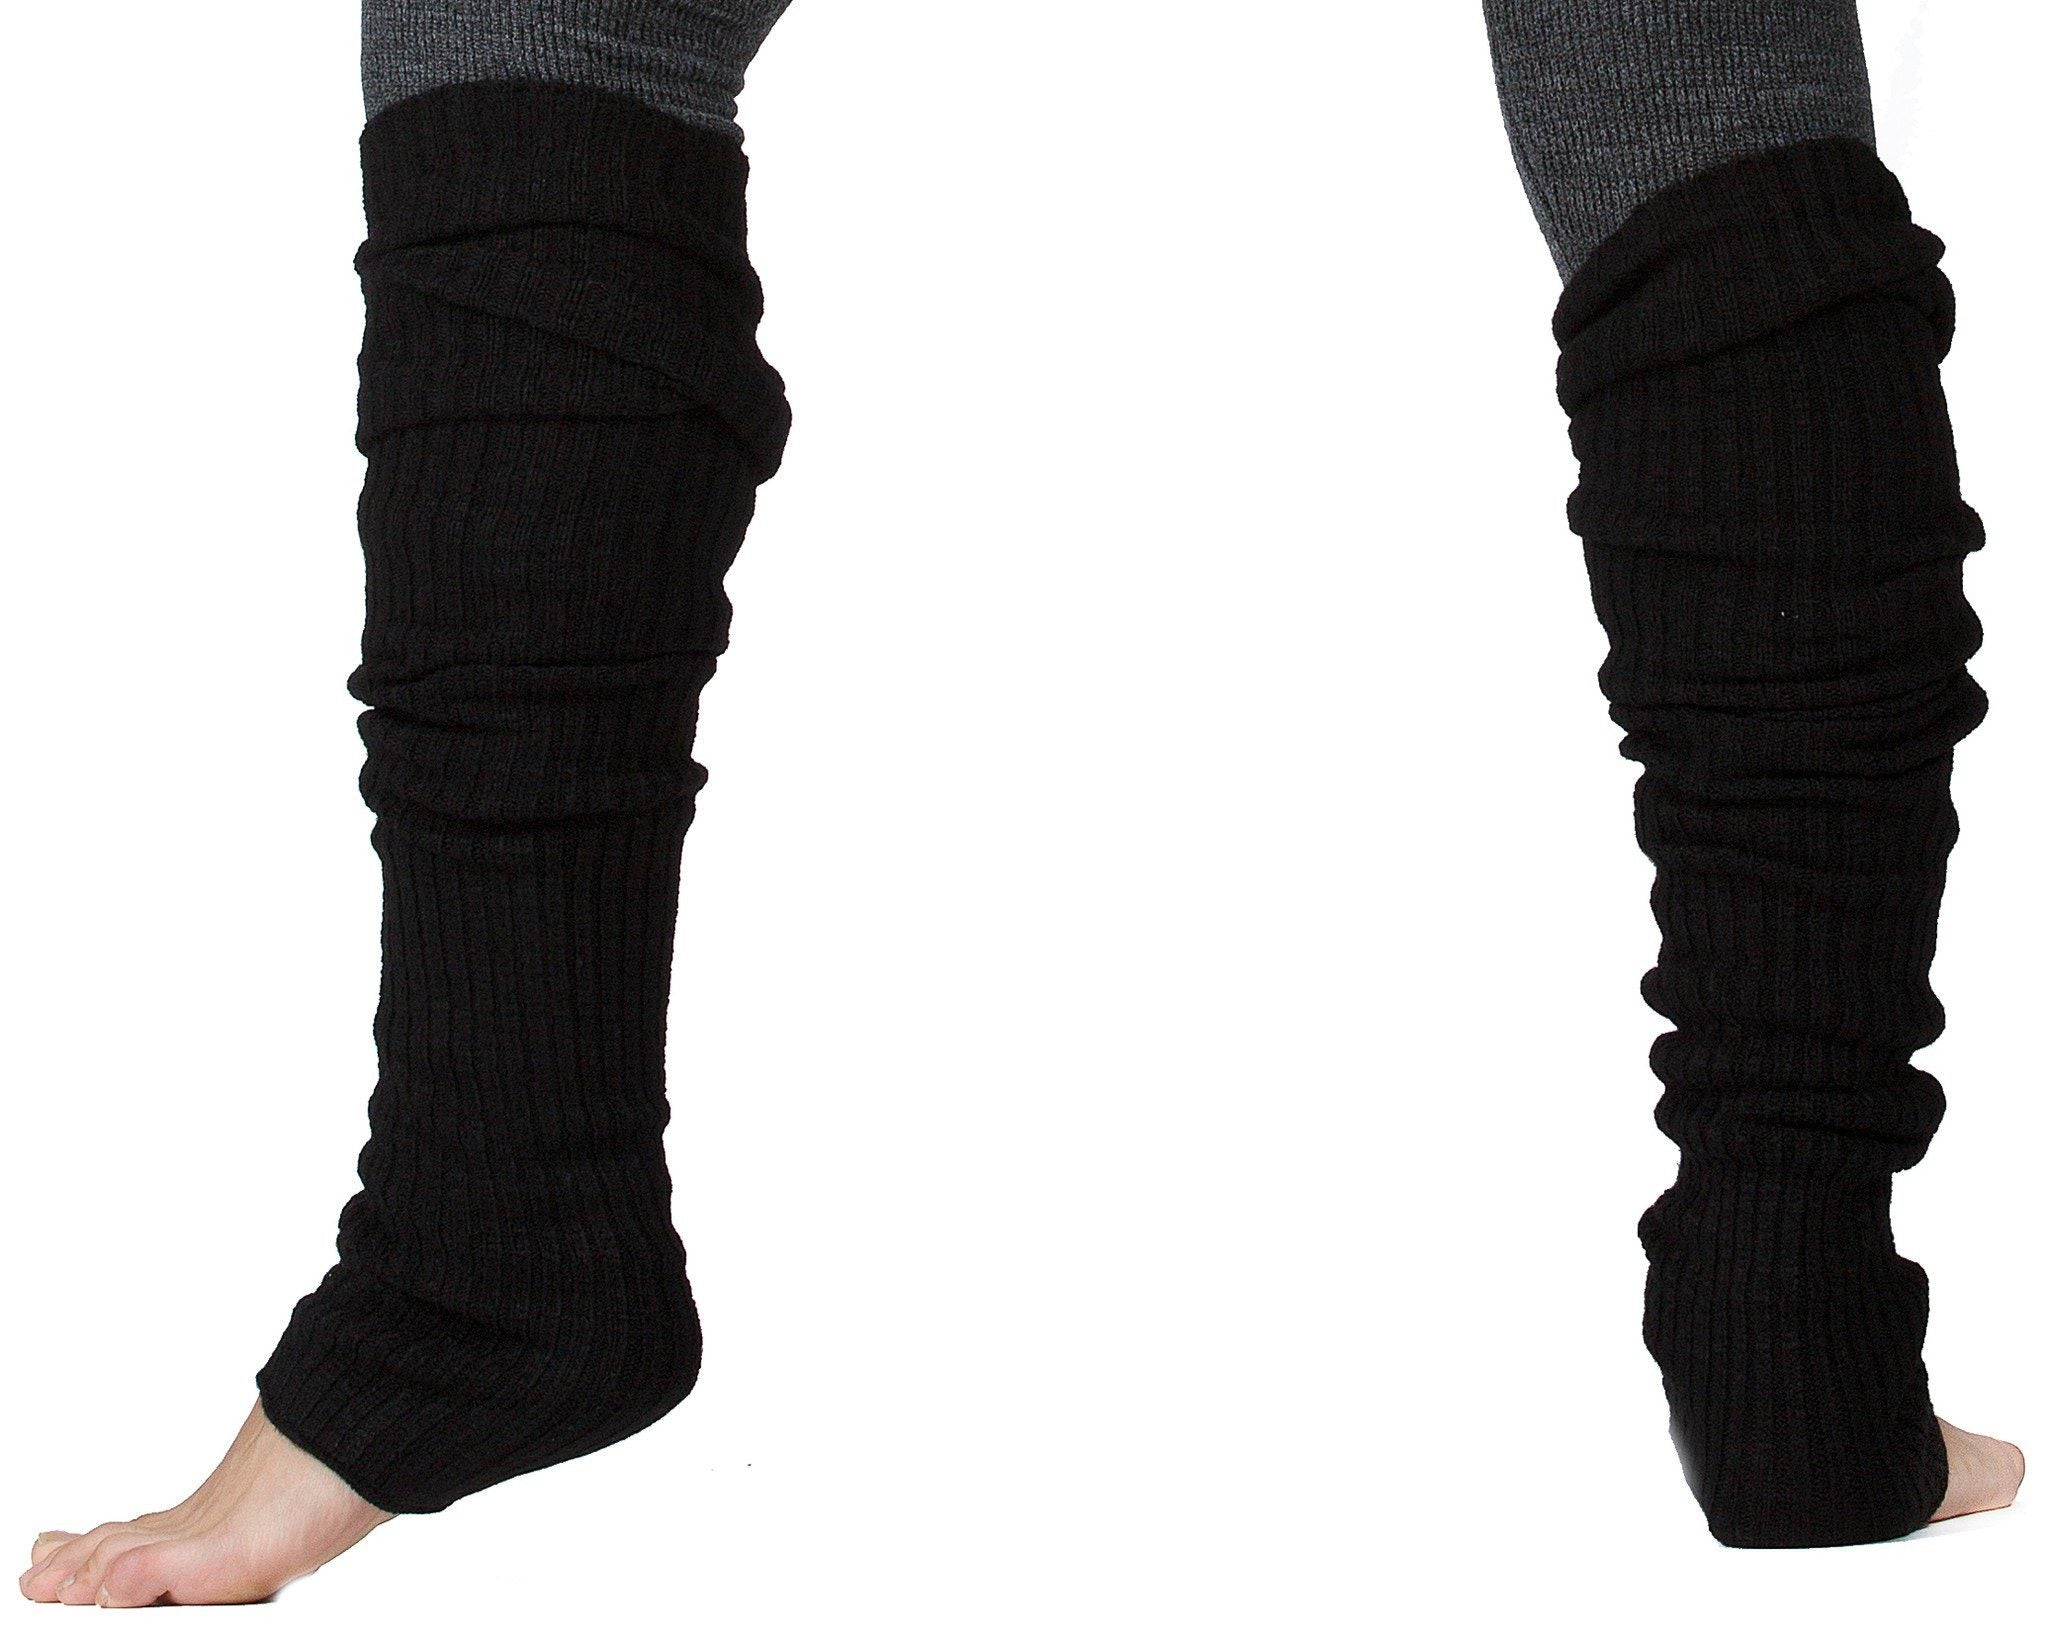 New York Black / 16 Inch Leg Warmer Leg Warmers / Dark Gray / Men's Dancewear @KDdanceNewYork #MadeInUSA - 2